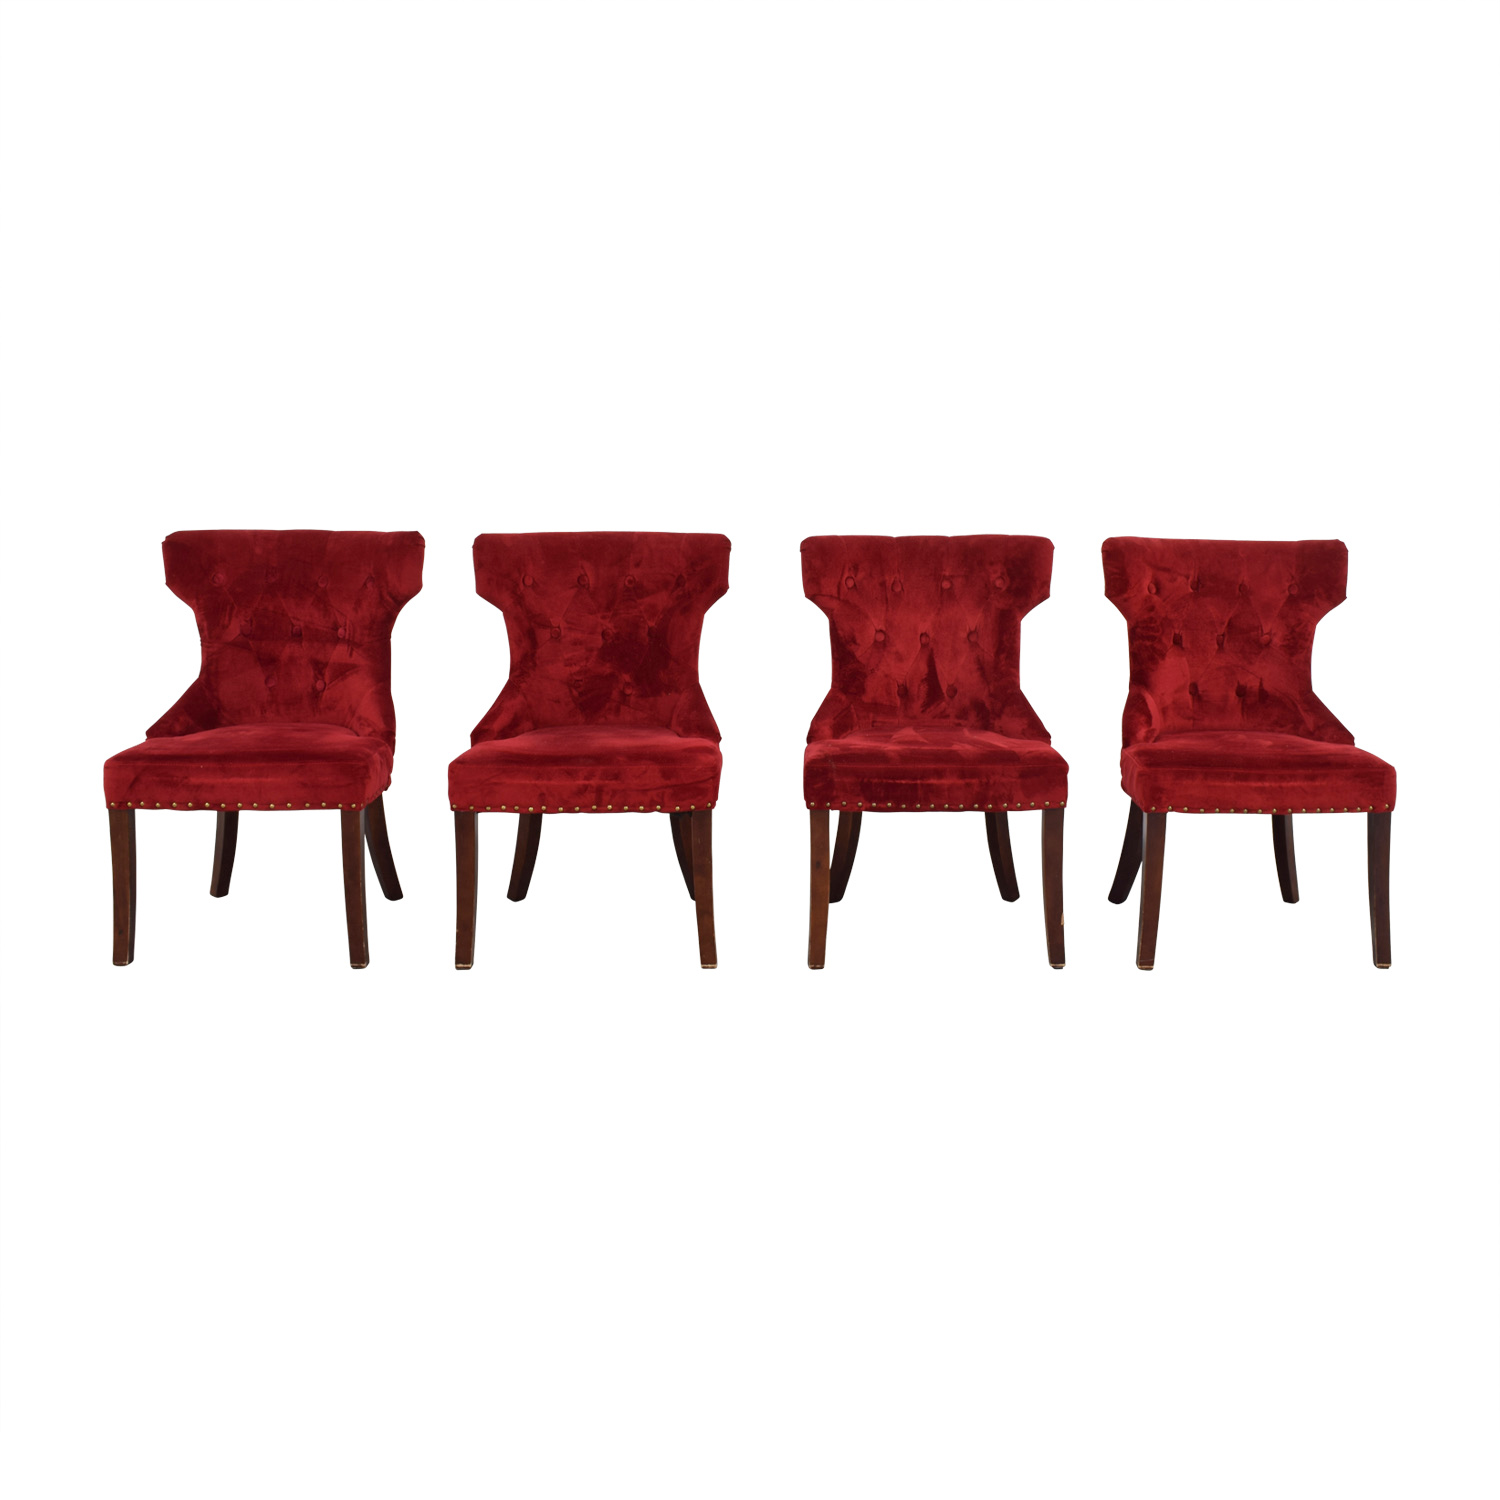 buy Tufted Nailhead Red Velvet Dining Chairs